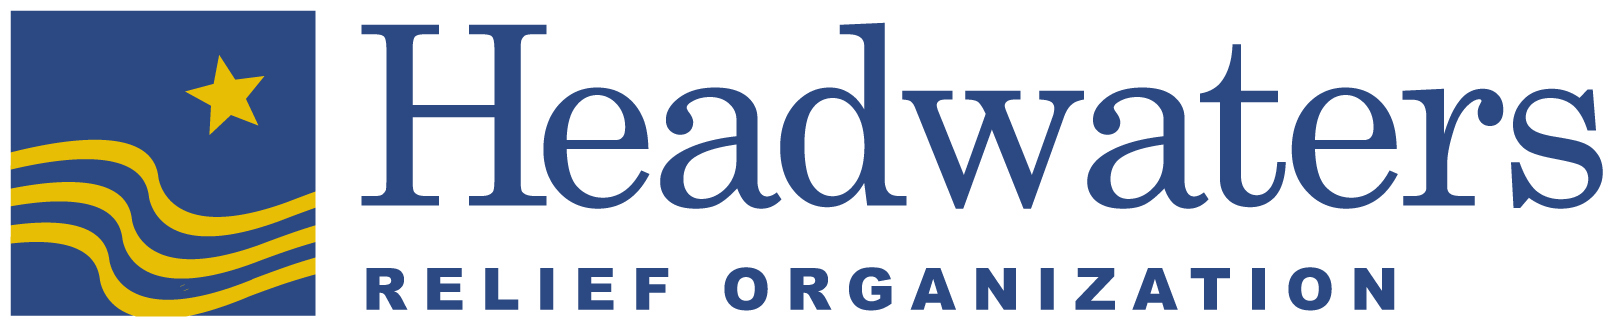 headwaters-relief-logo-1.jpg